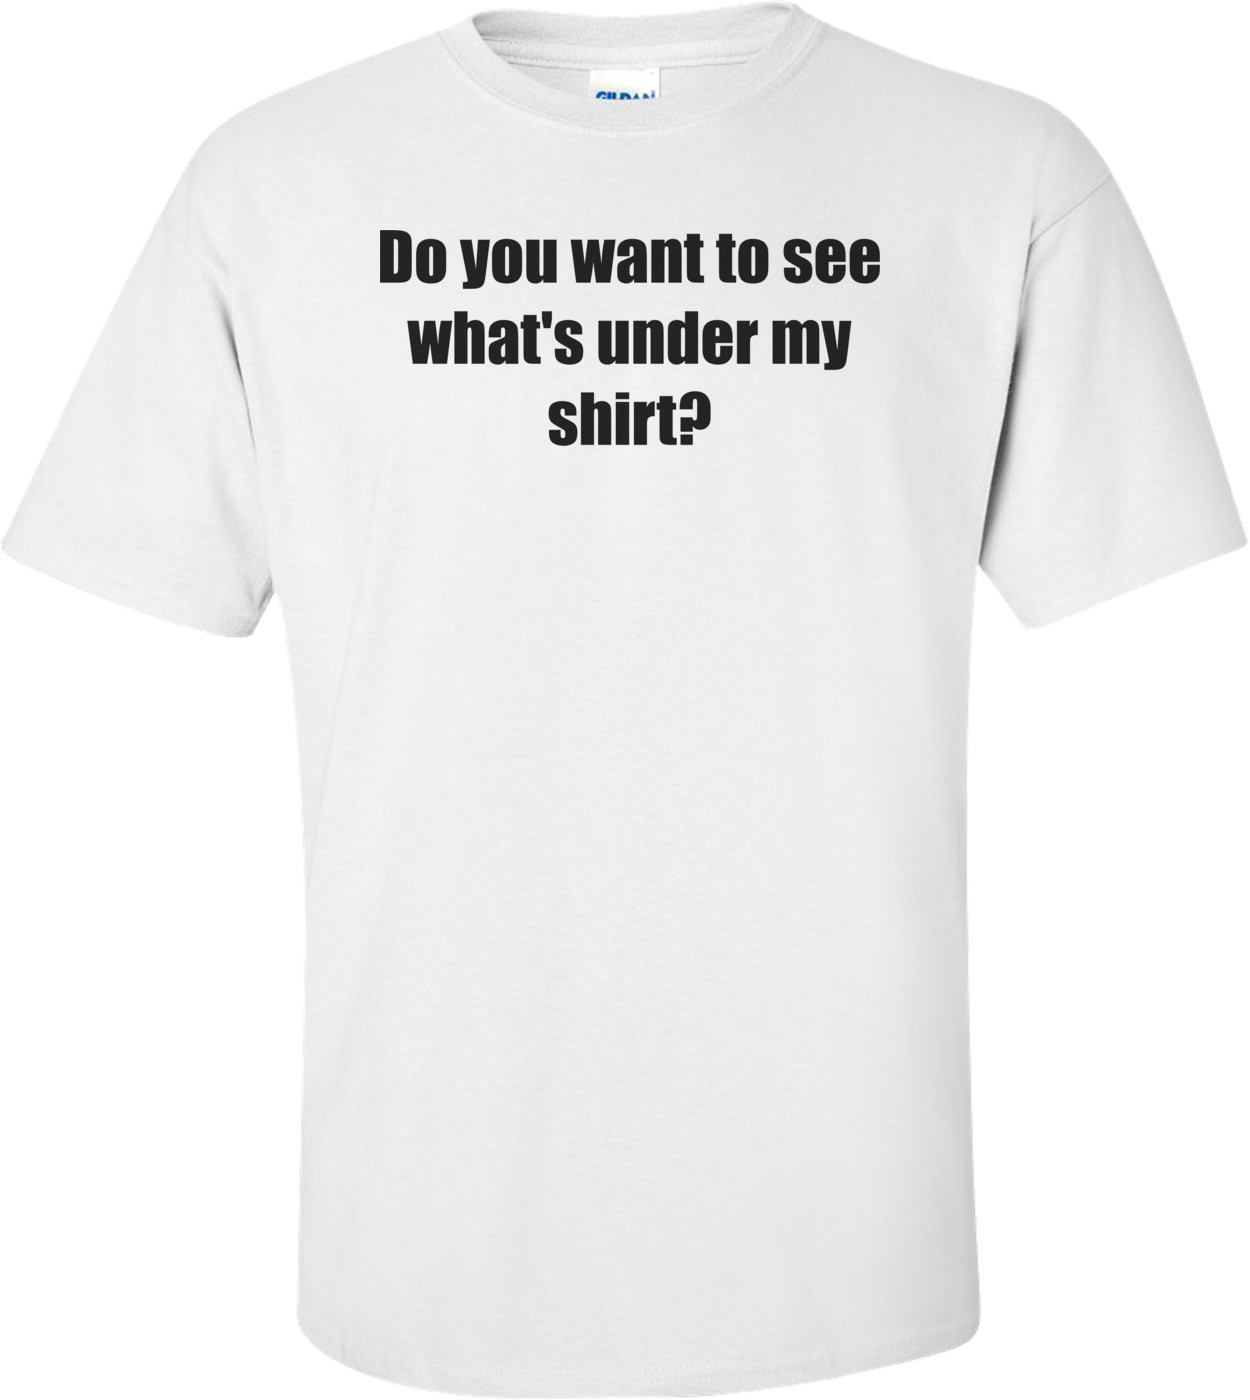 Do you want to see what's under my shirt? Shirt